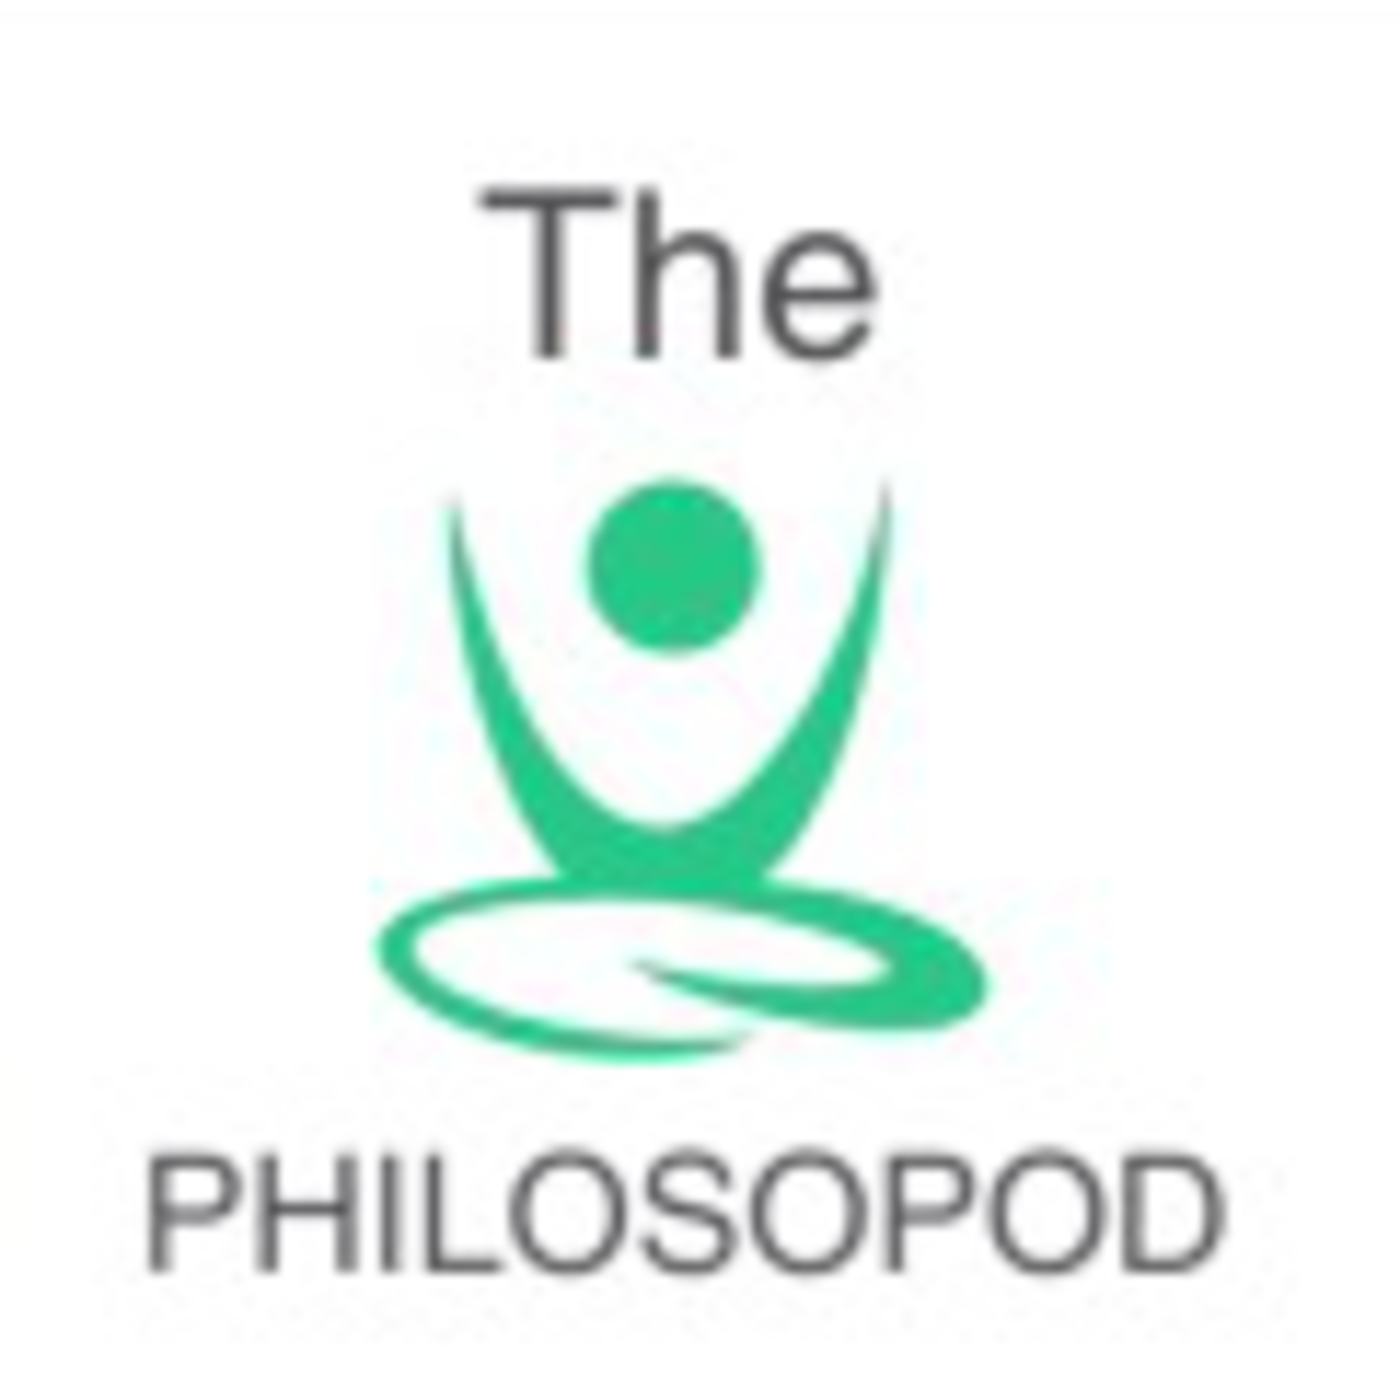 The Philosopod